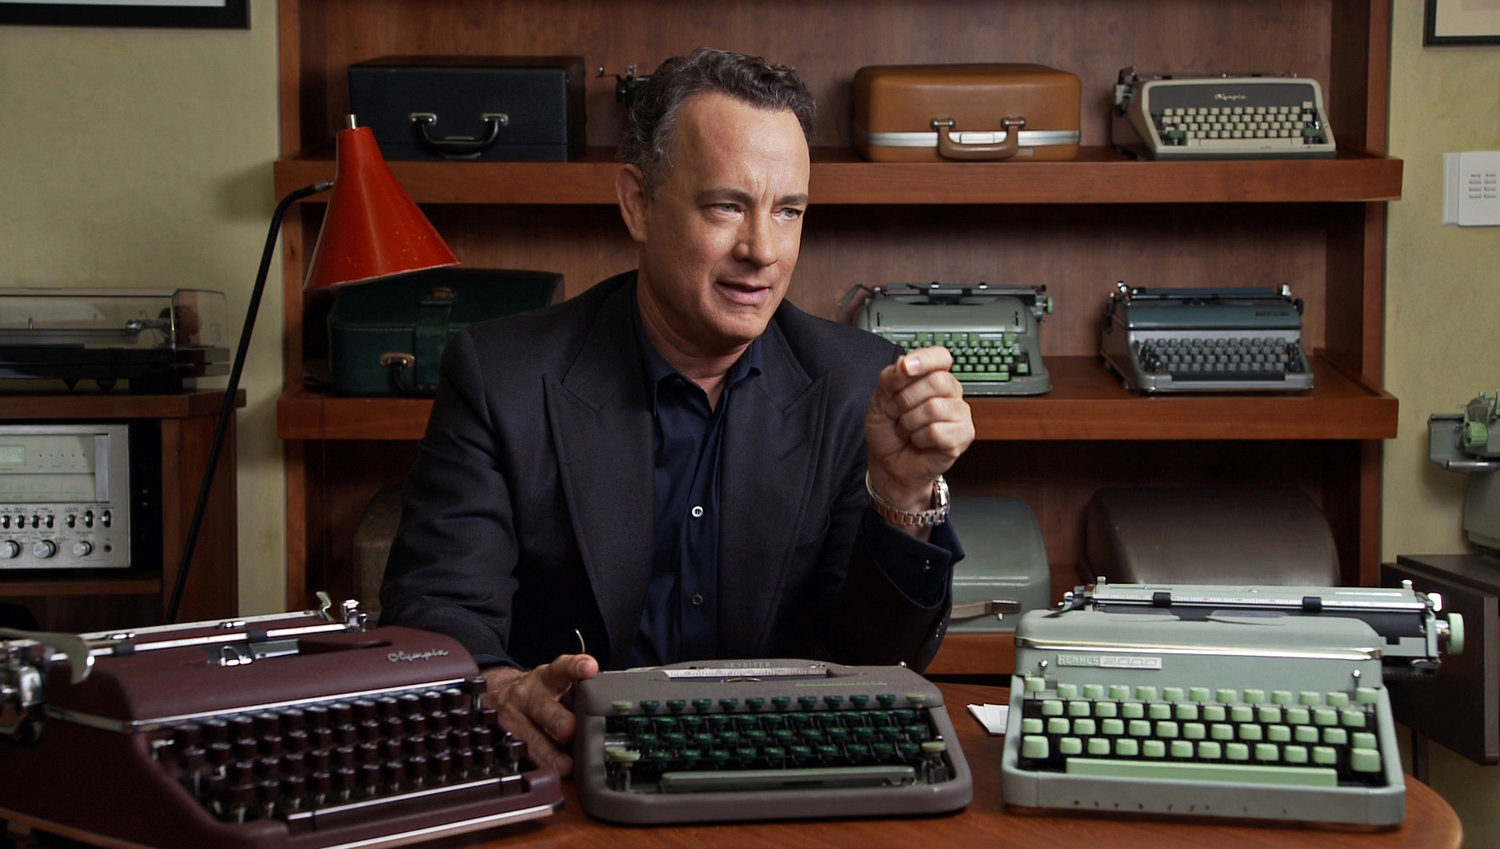 """""""California Typewriter"""": Tom Hanks. Documentary focuses on California Typewriter in Berkeley, Calif., one of the few remaining repair shops in America and the artists, writers, and collectors who remain steadfastly loyal to the typewriter (including Tom Hanks, John Mayer, David McCullough, Sam Shepard)."""